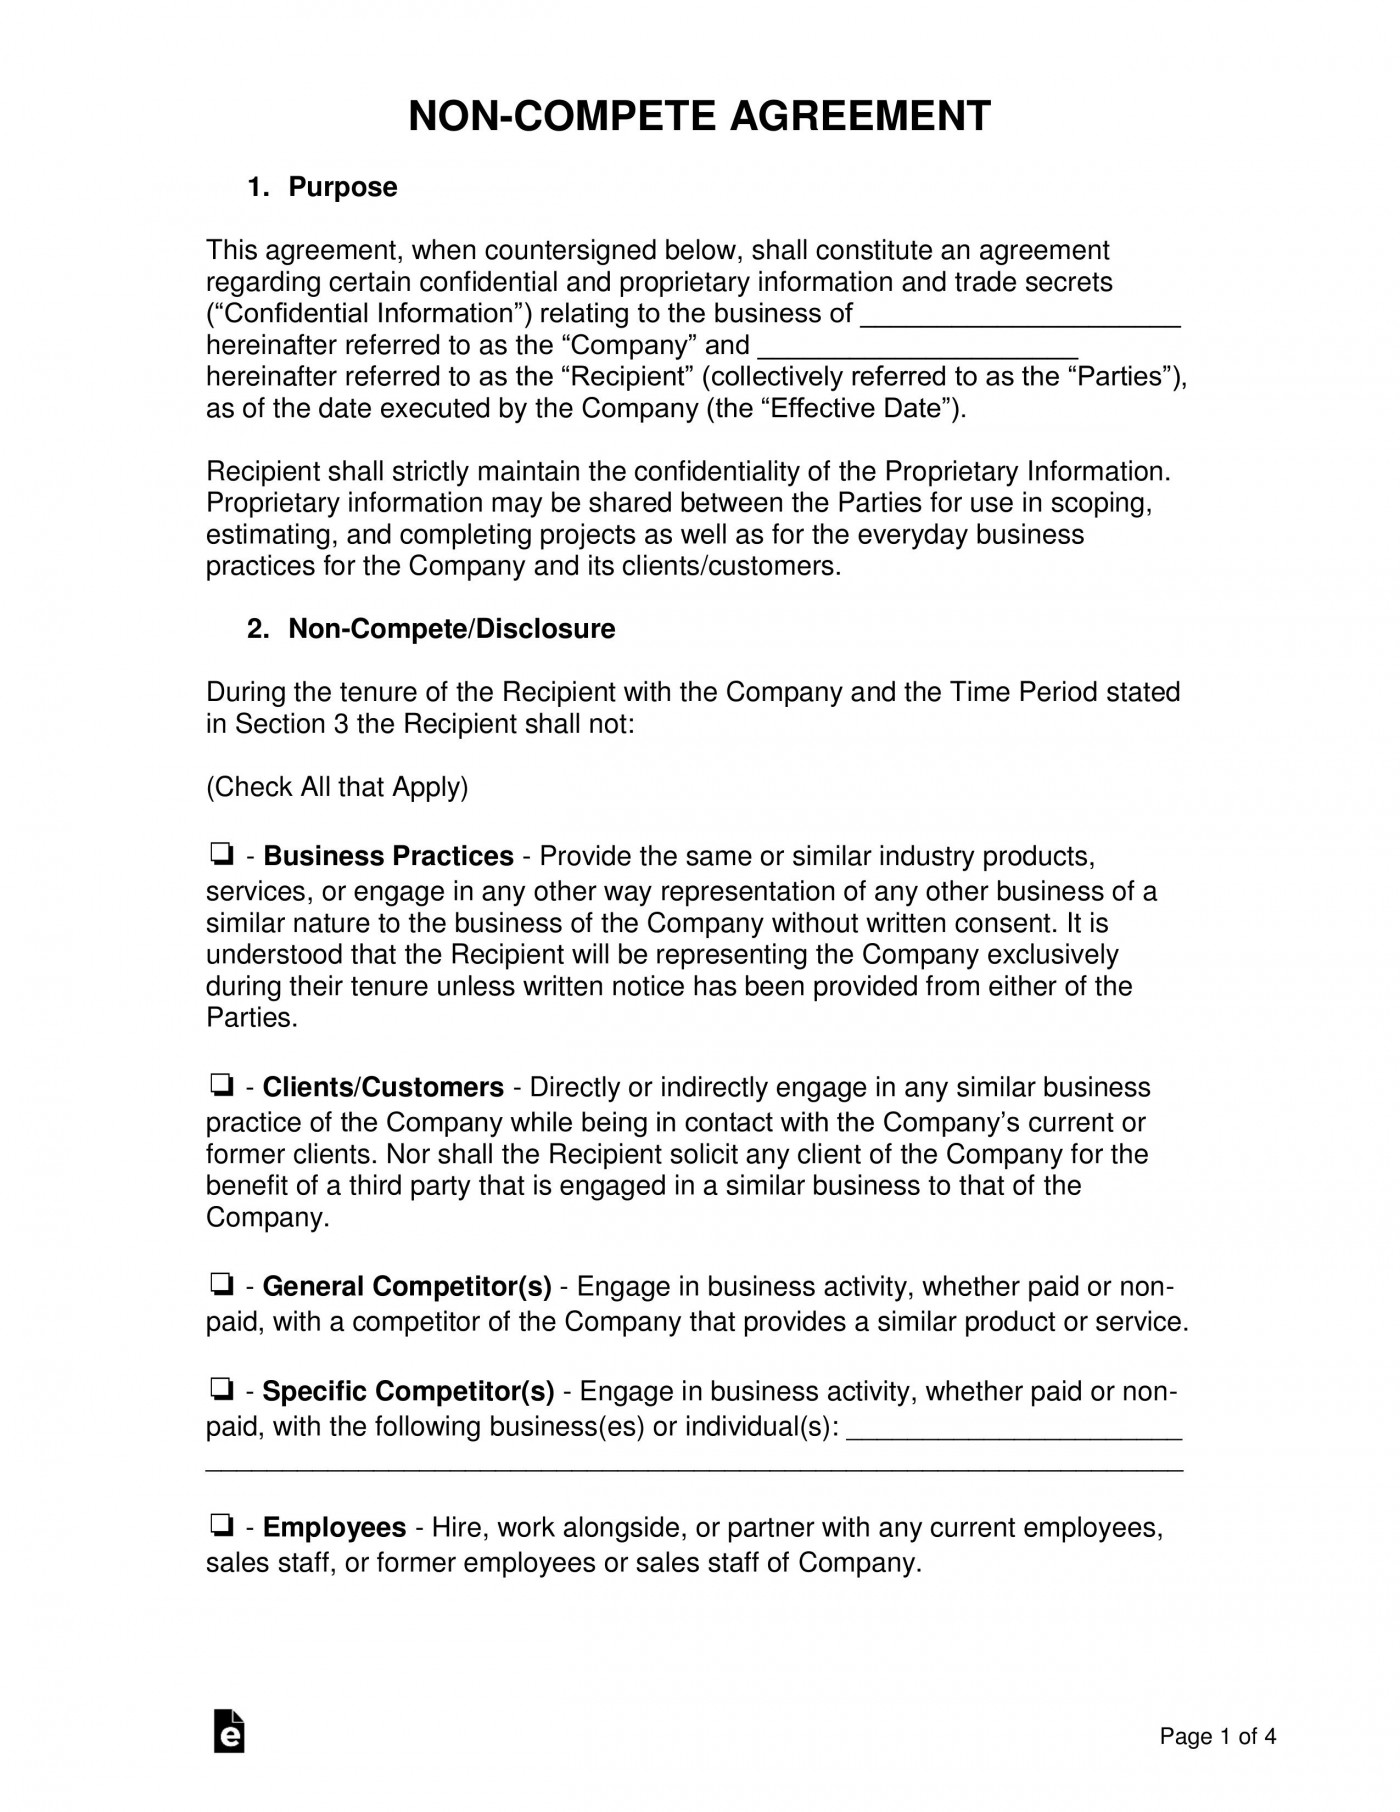 005 Magnificent Employee Non Compete Agreement Template Image  Free Confidentiality Non-compete Disclosure1400